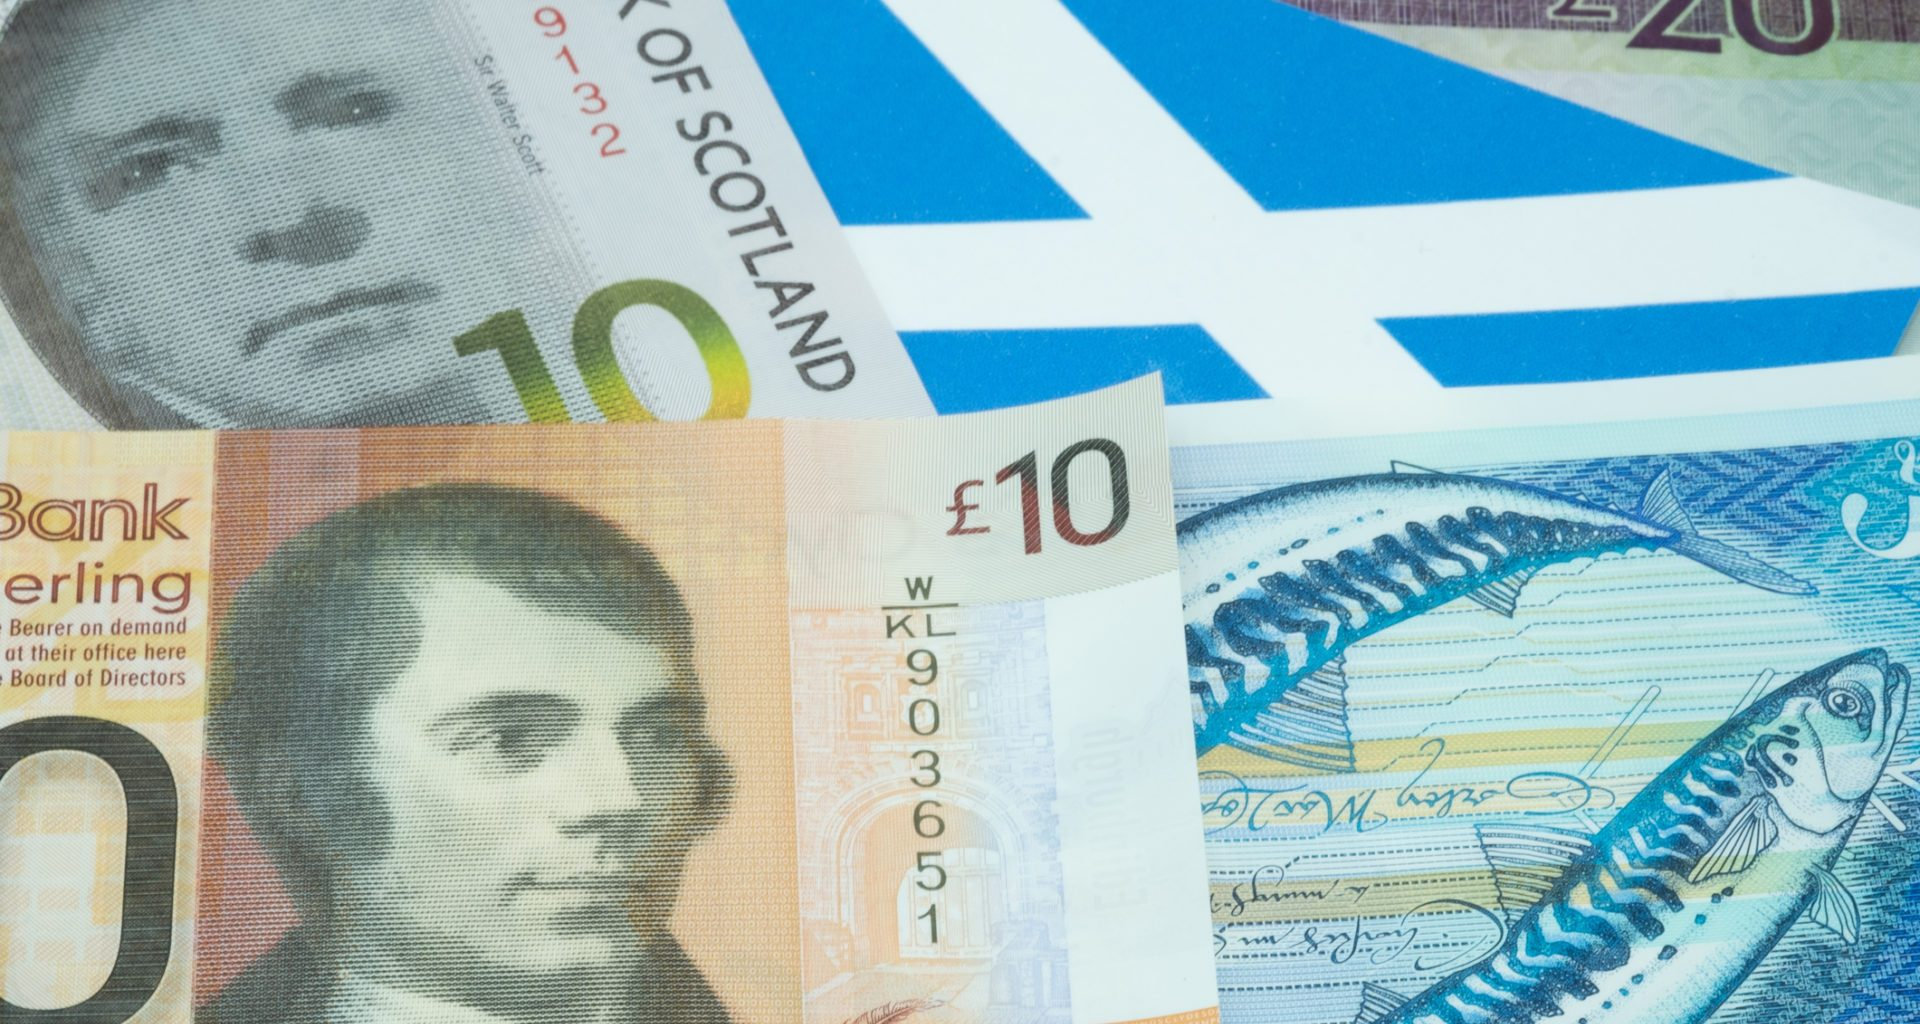 Claim Scottish Government underspent budget is Mostly True 8